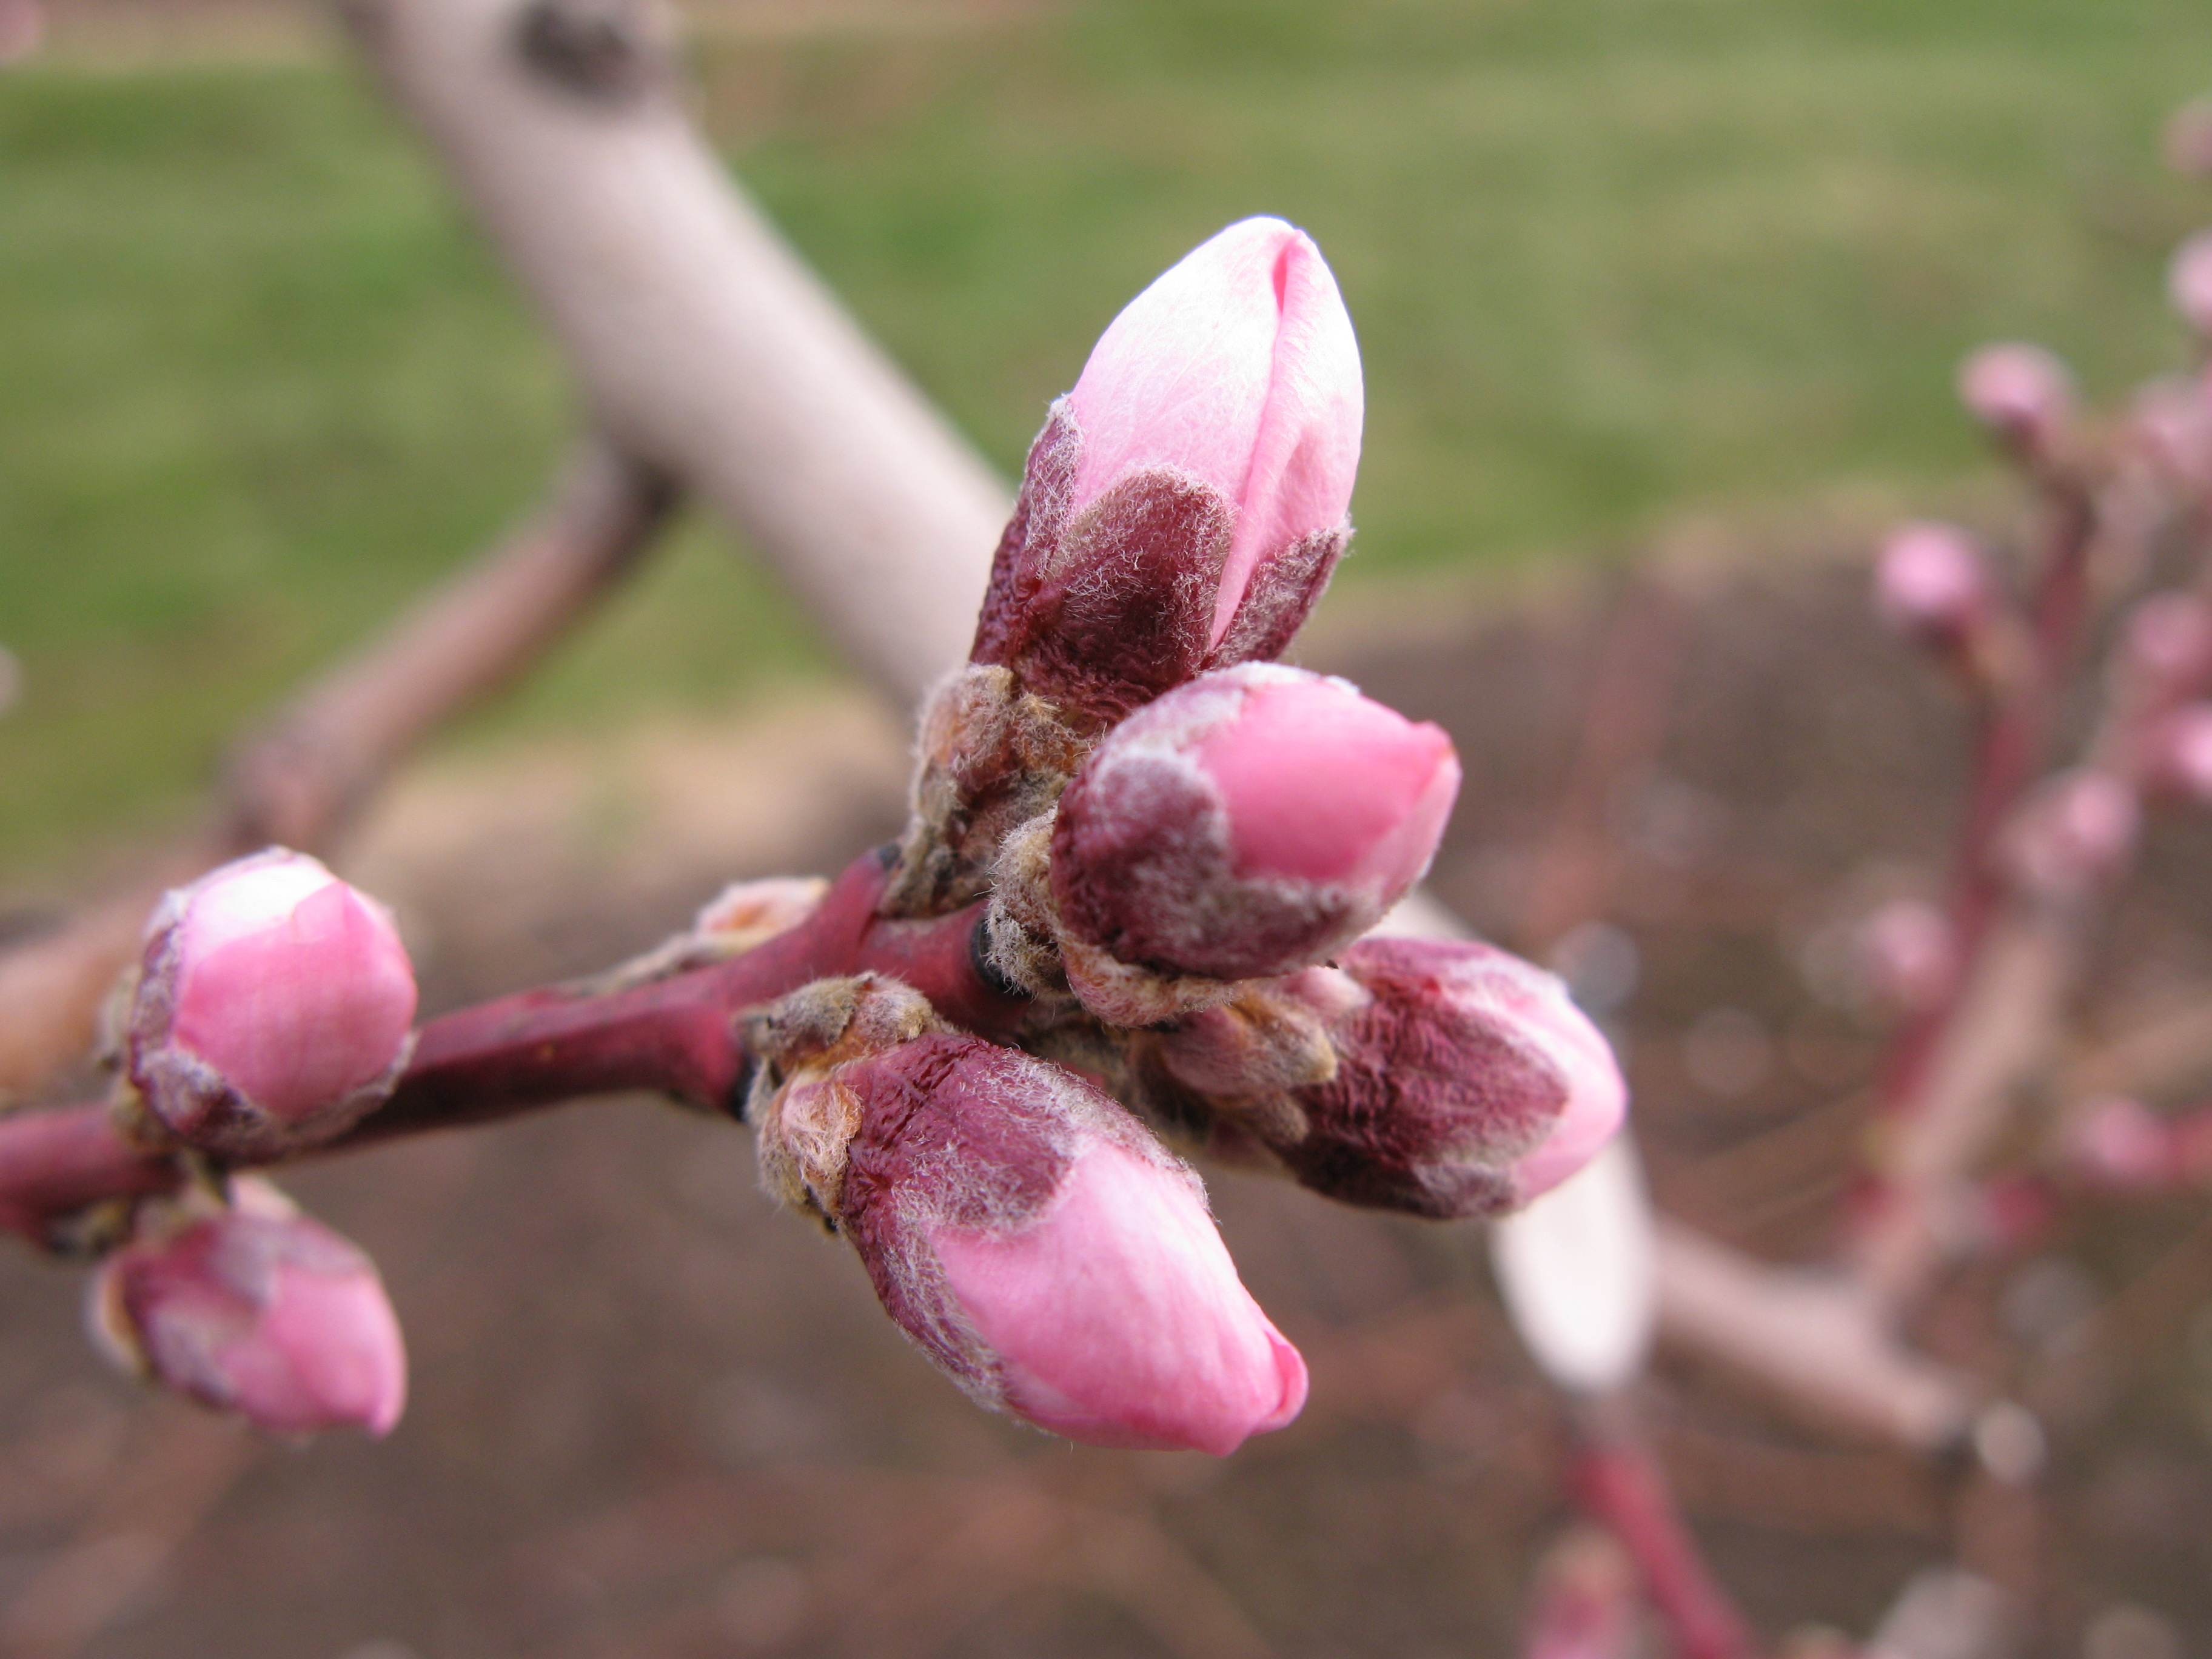 Several peach blossoms showing pink petals pre-bloom